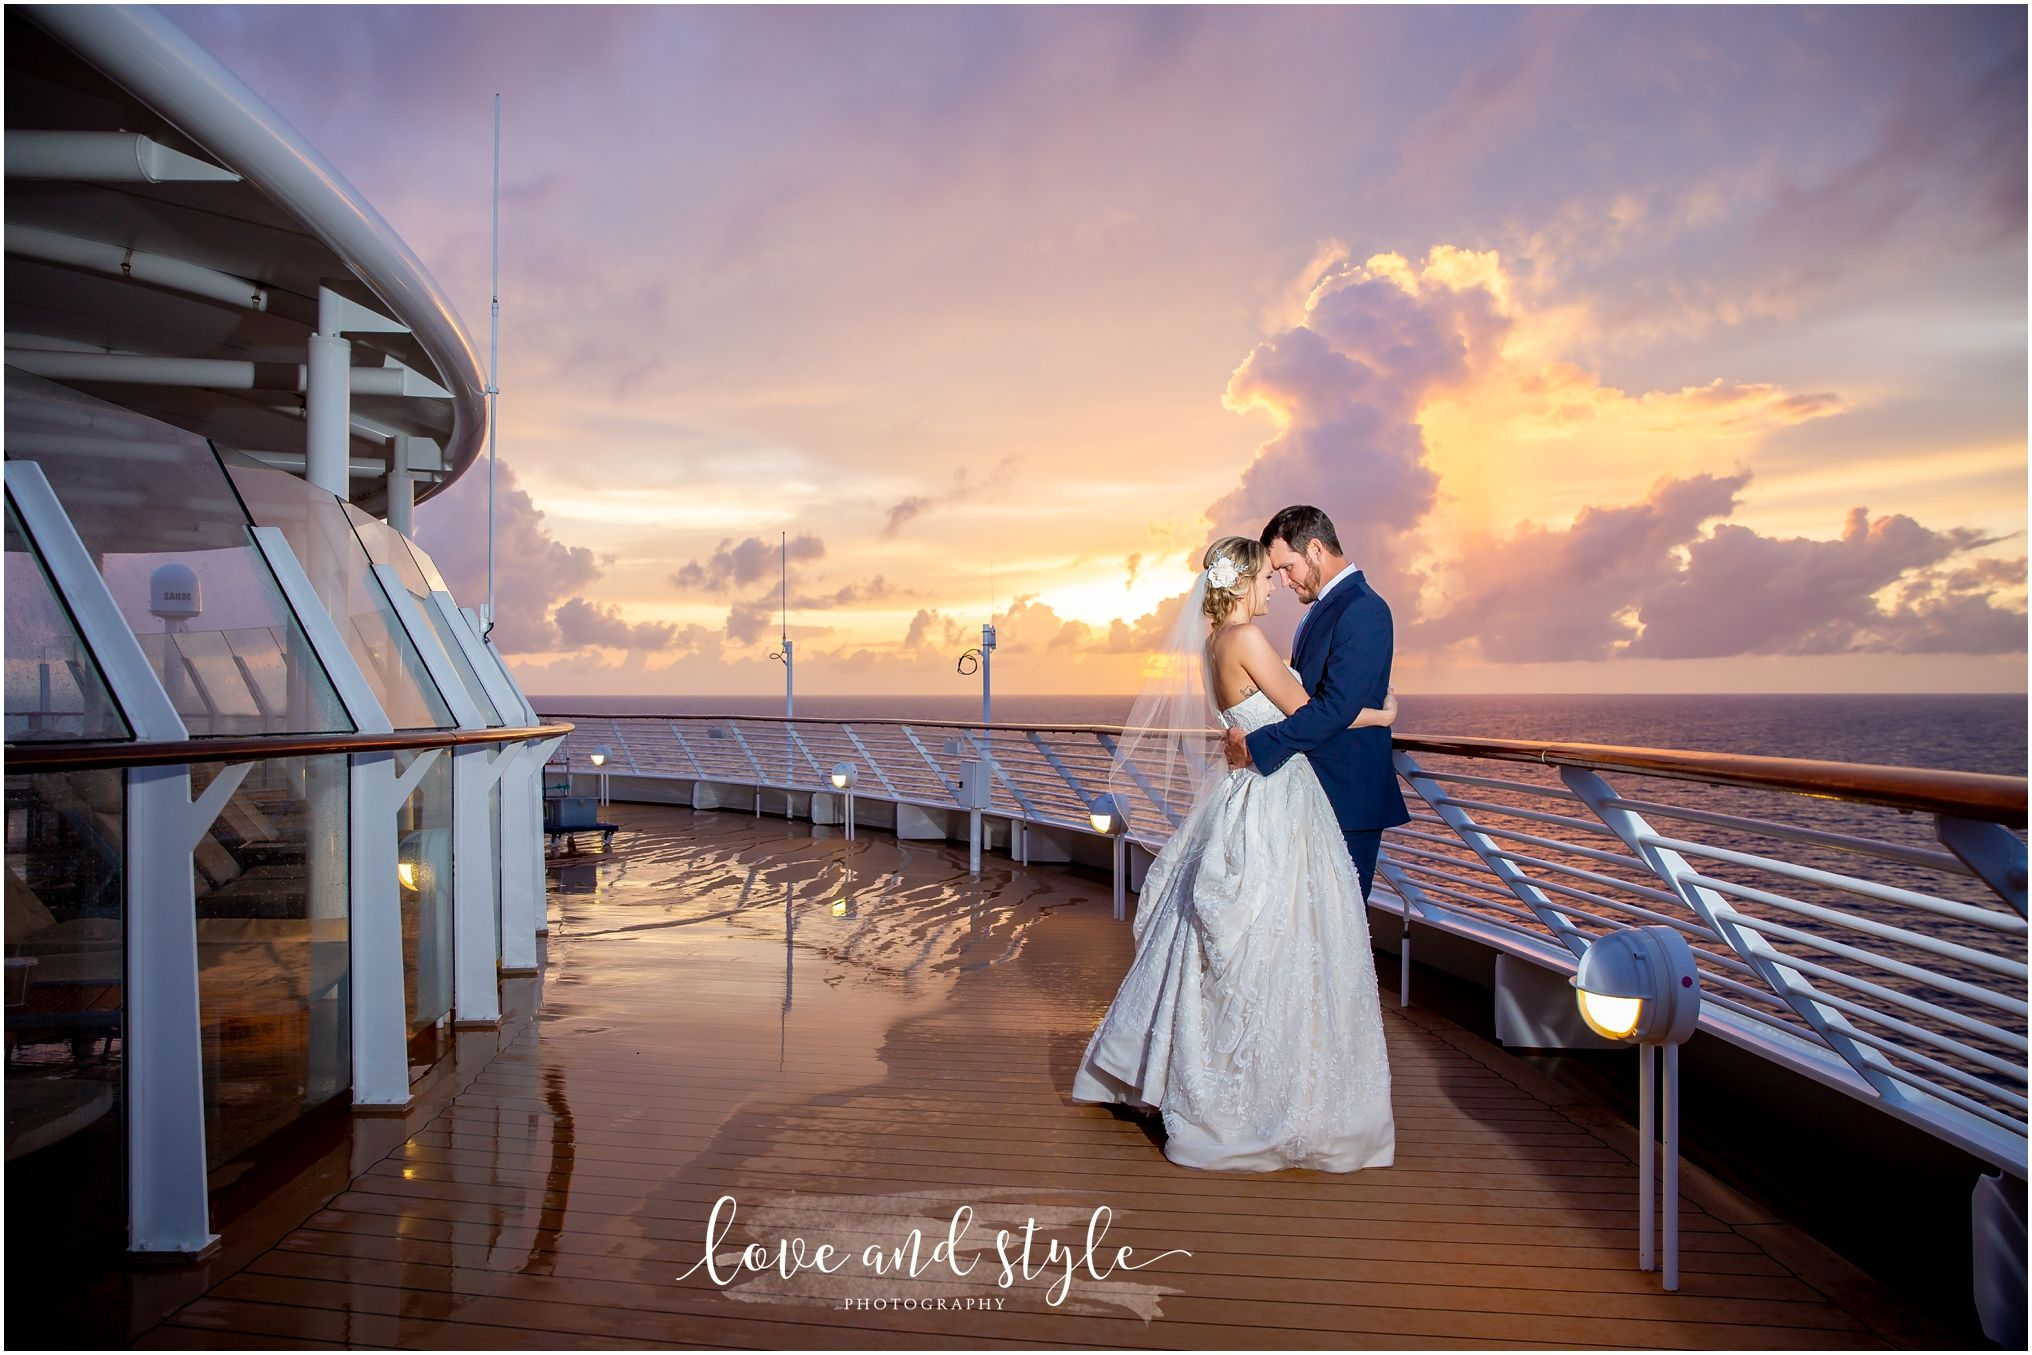 Disney Dream Cruise Ship Wedding Photo Of The Bride And Groom On The Deck At Sunset Disneydre Cruise Ship Wedding Disney Dream Cruise Disney Cruise Wedding